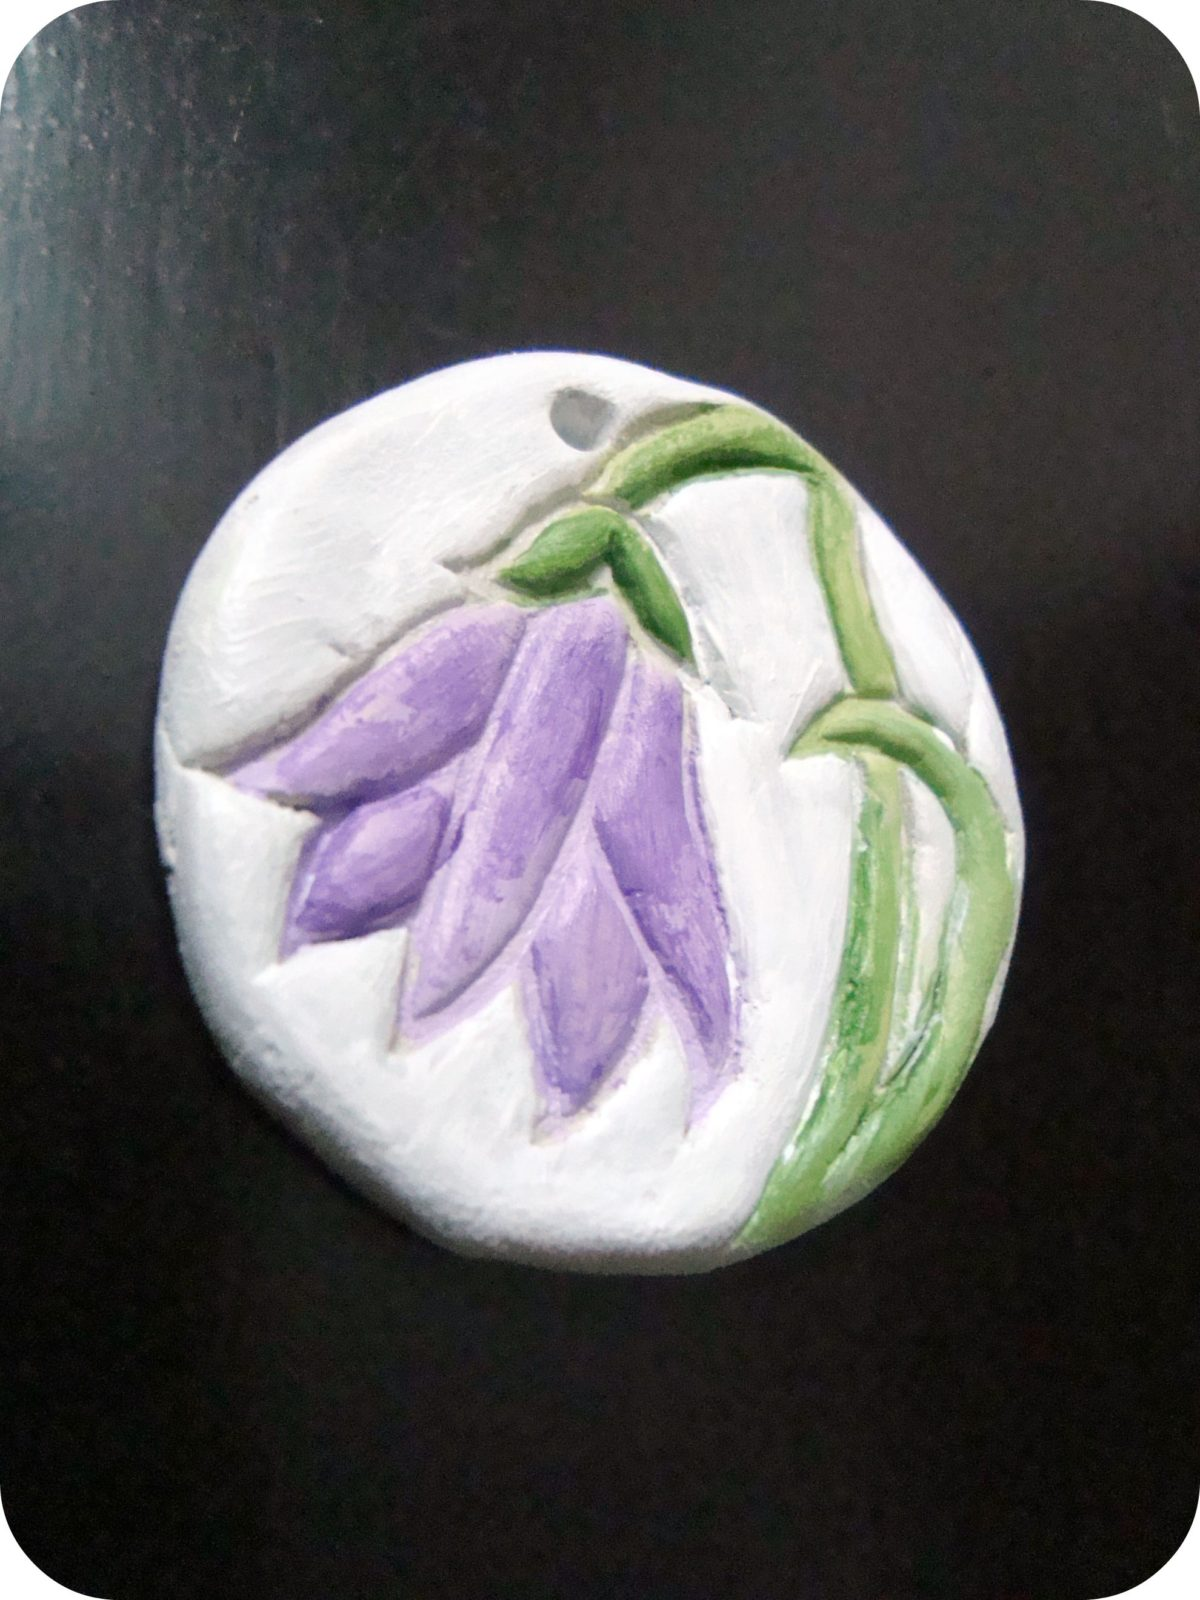 Indian Lily- A handmade pendant